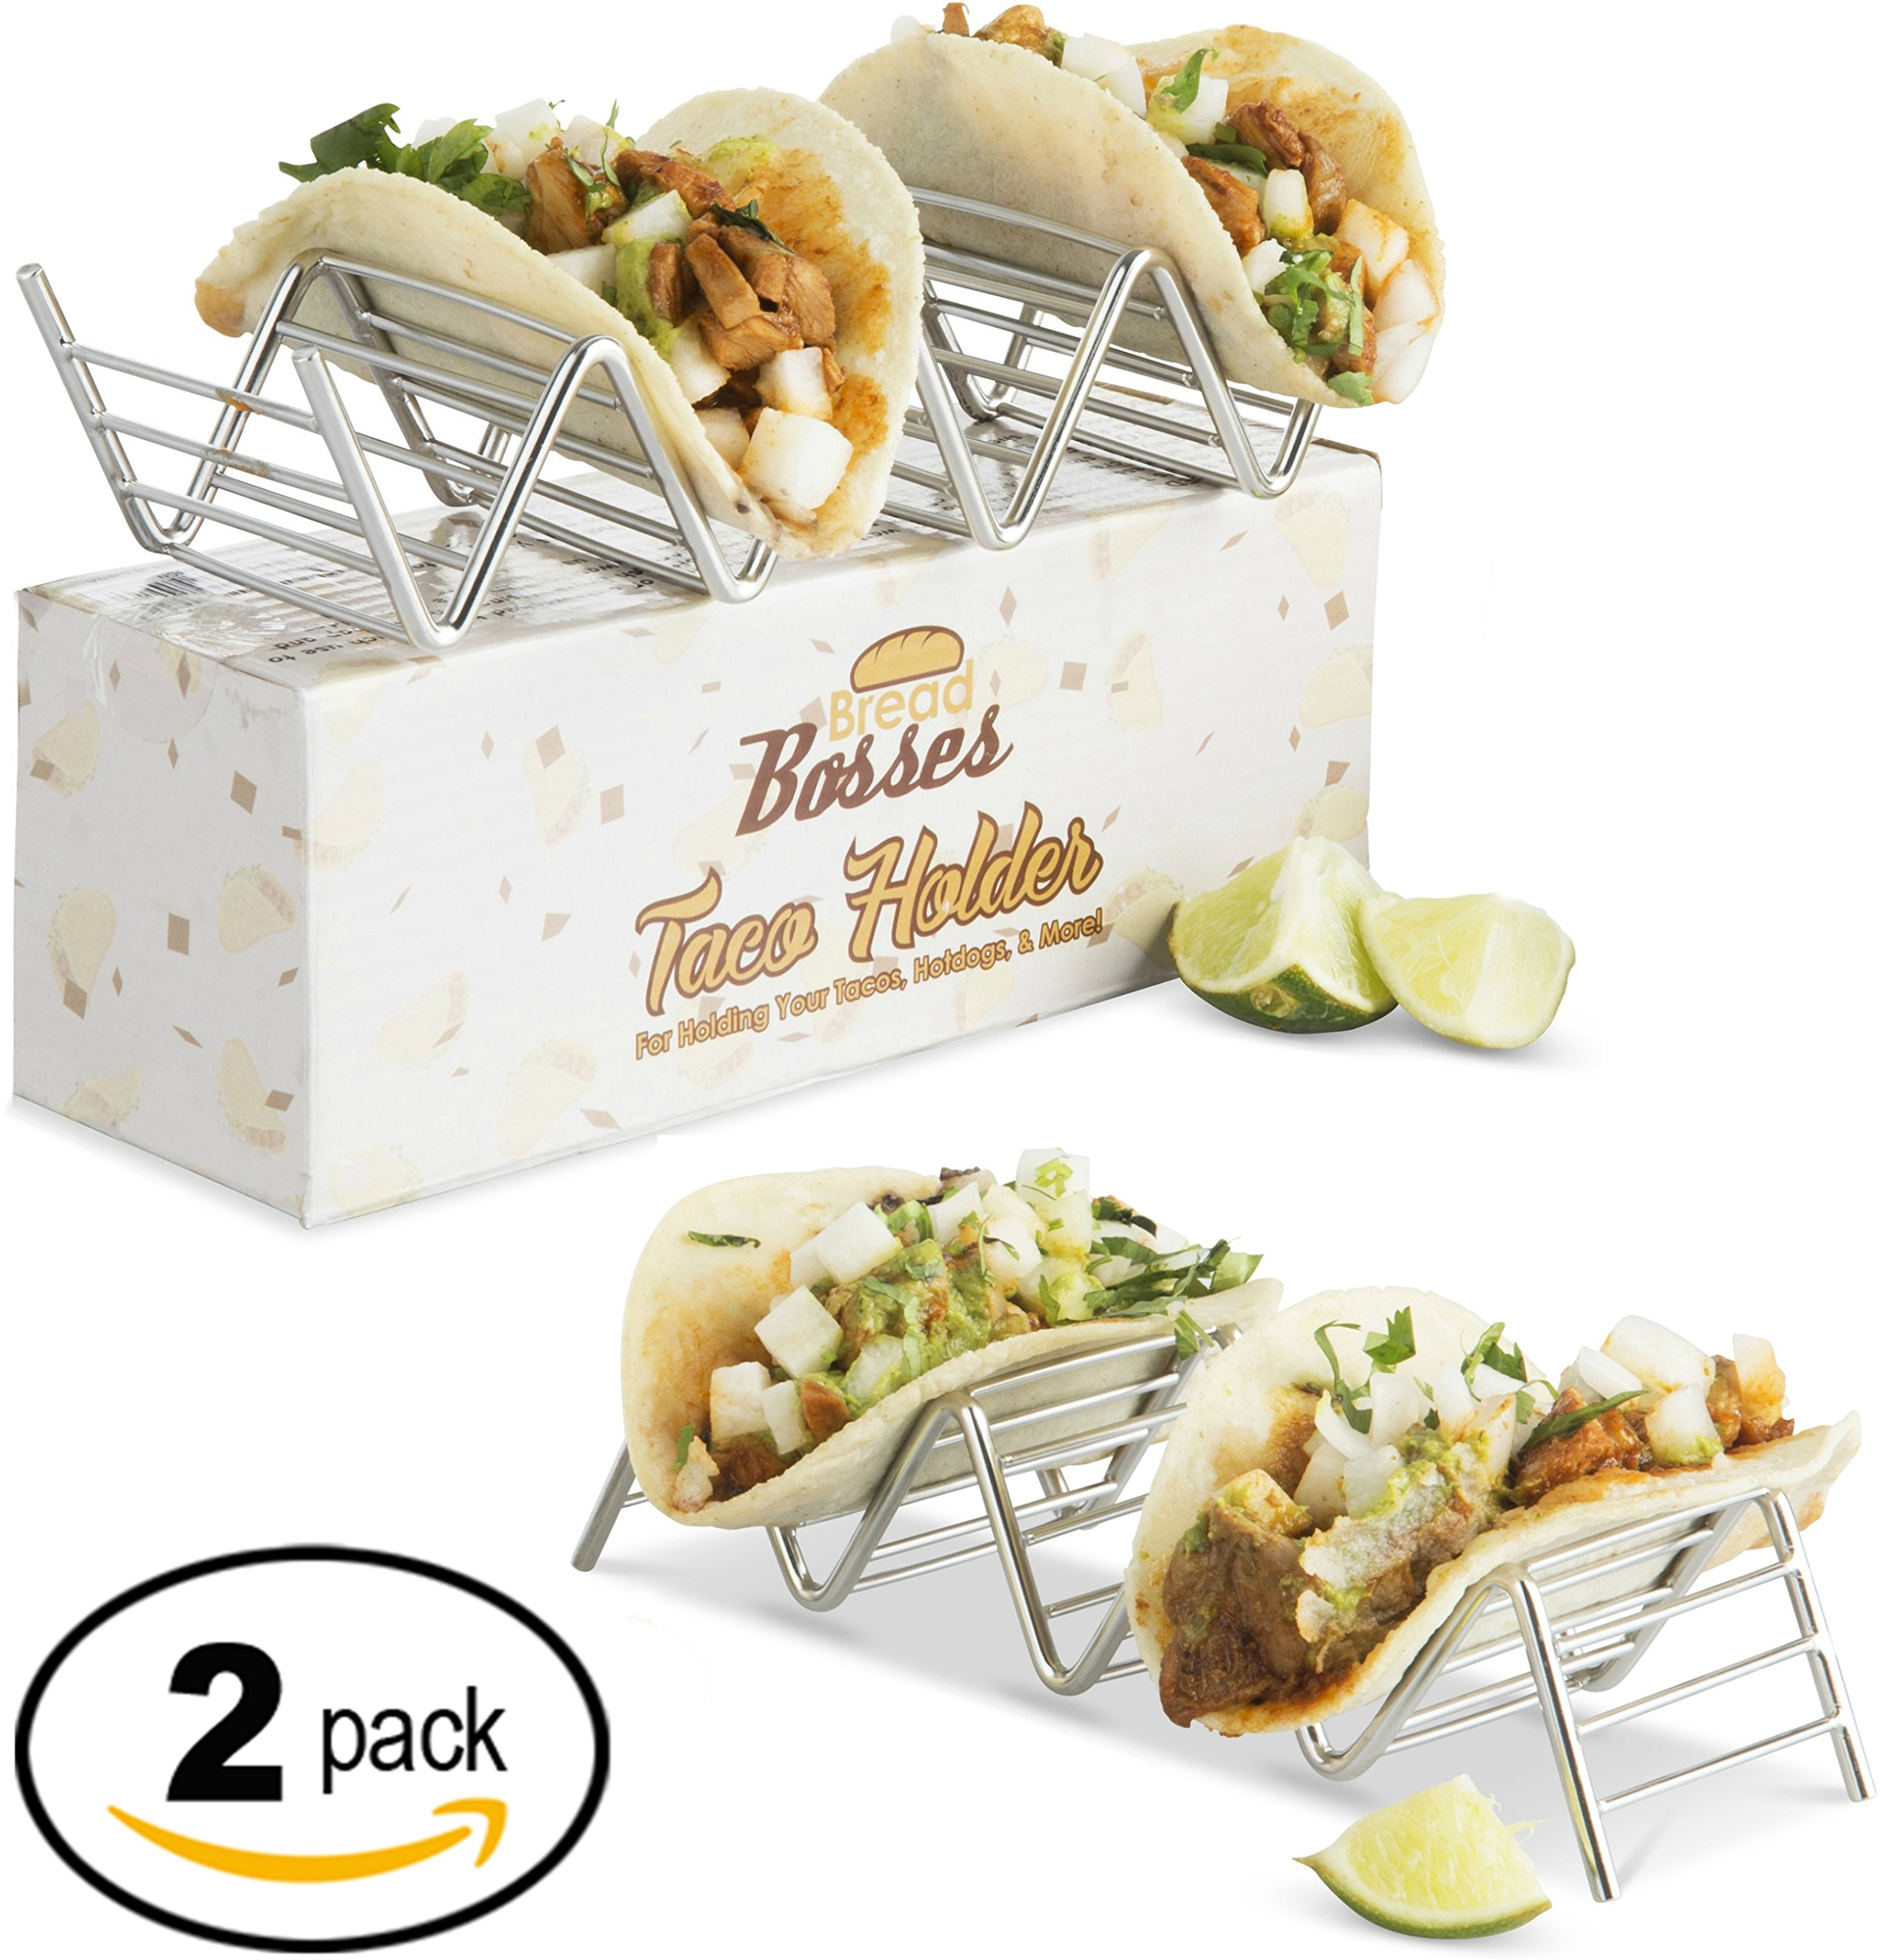 Stainless Steel Taco Holder Set: Holds Tortilla Up for Easy & No Mess Party Taco Plates - Taco Stand Shell Holder to Serve Street Tacos Rack & Heat Tortillas - Metal Taco Shell Mold & Serving Trays